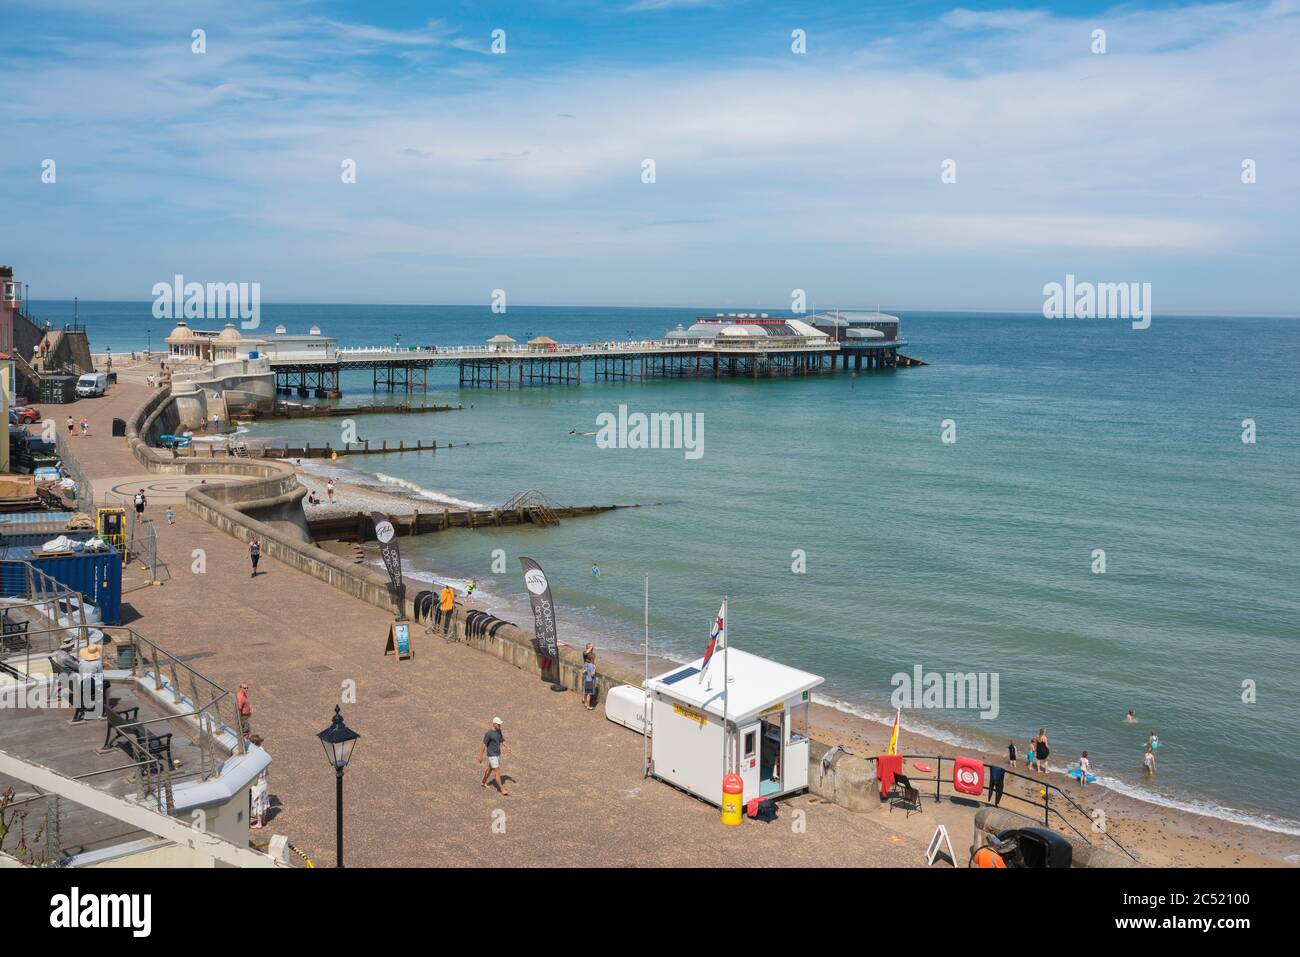 Traditional English seaside town, view in summer of the esplanade and Edwardian era pier in the seaside town of Cromer, Norfolk, England, UK Stock Photo